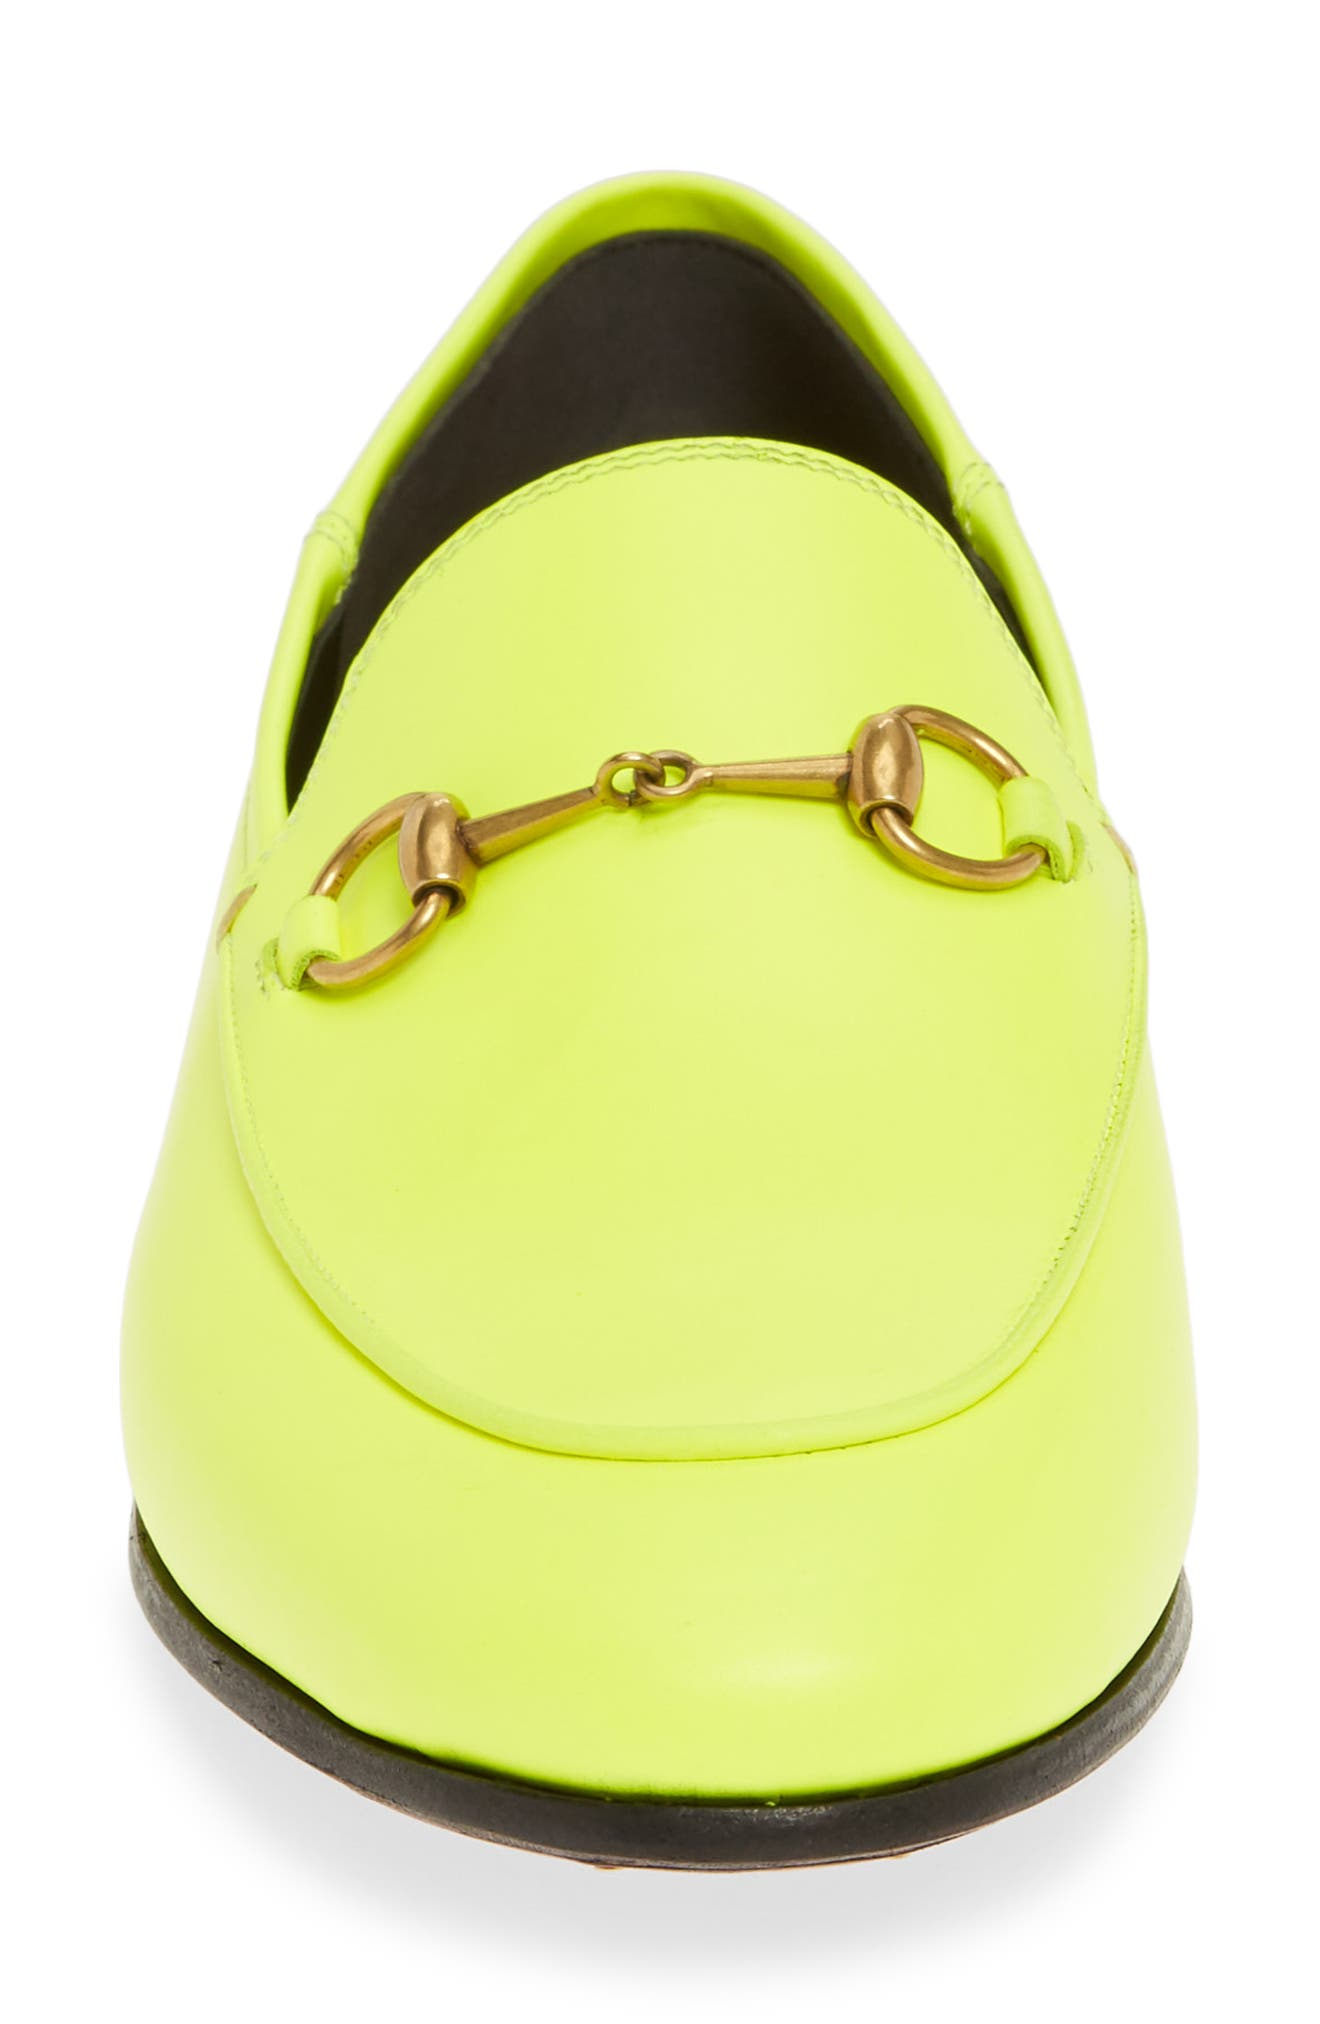 Brixton Convertible Loafer,                             Alternate thumbnail 4, color,                             YELLOW FLUO LEATHER